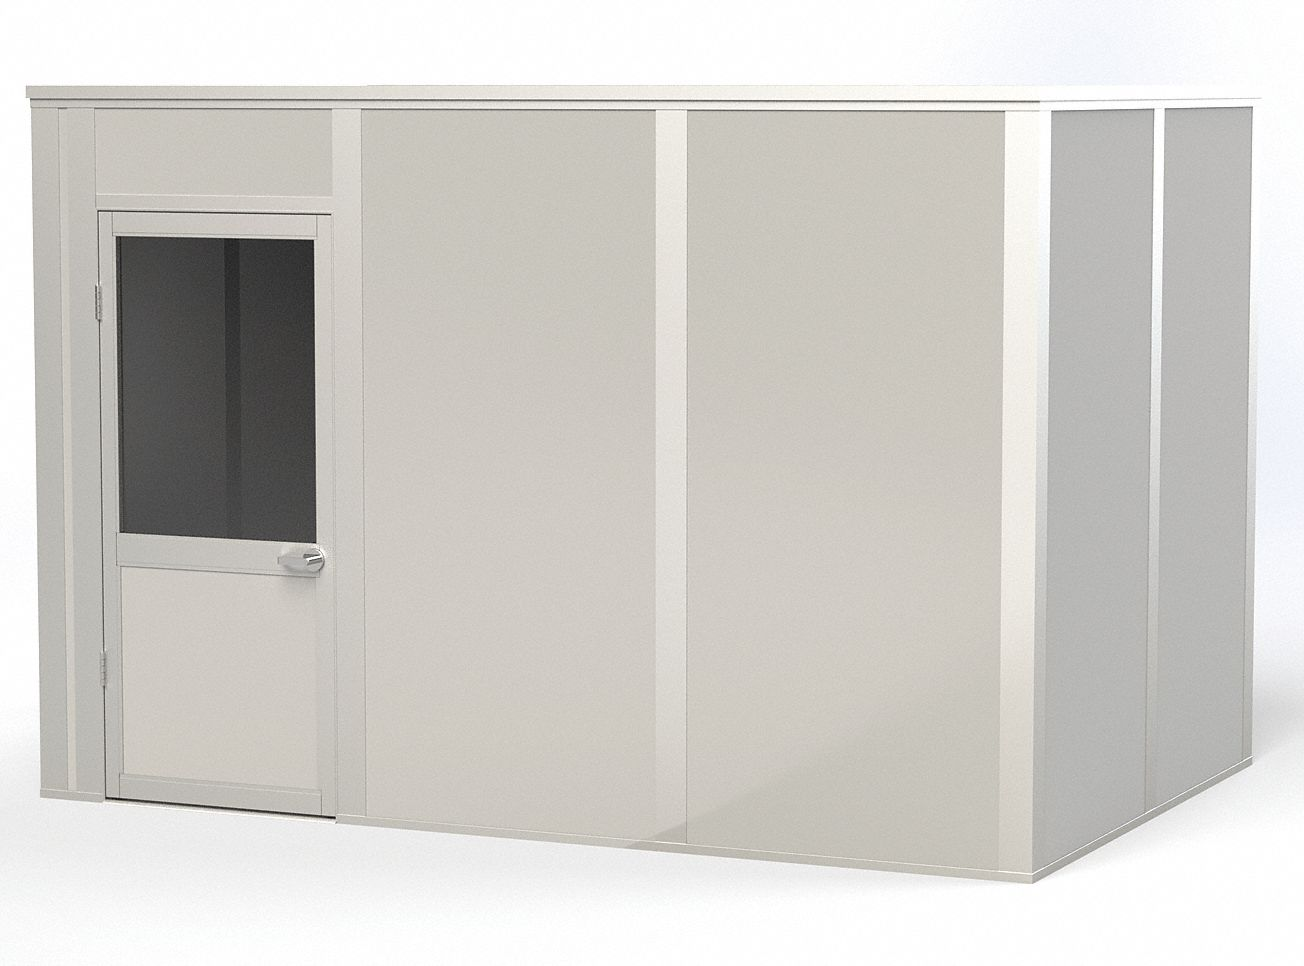 Modular In-Plant Office,  4-Wall,  12 ft. Width,  8 ft. Depth,  8 ft. Height